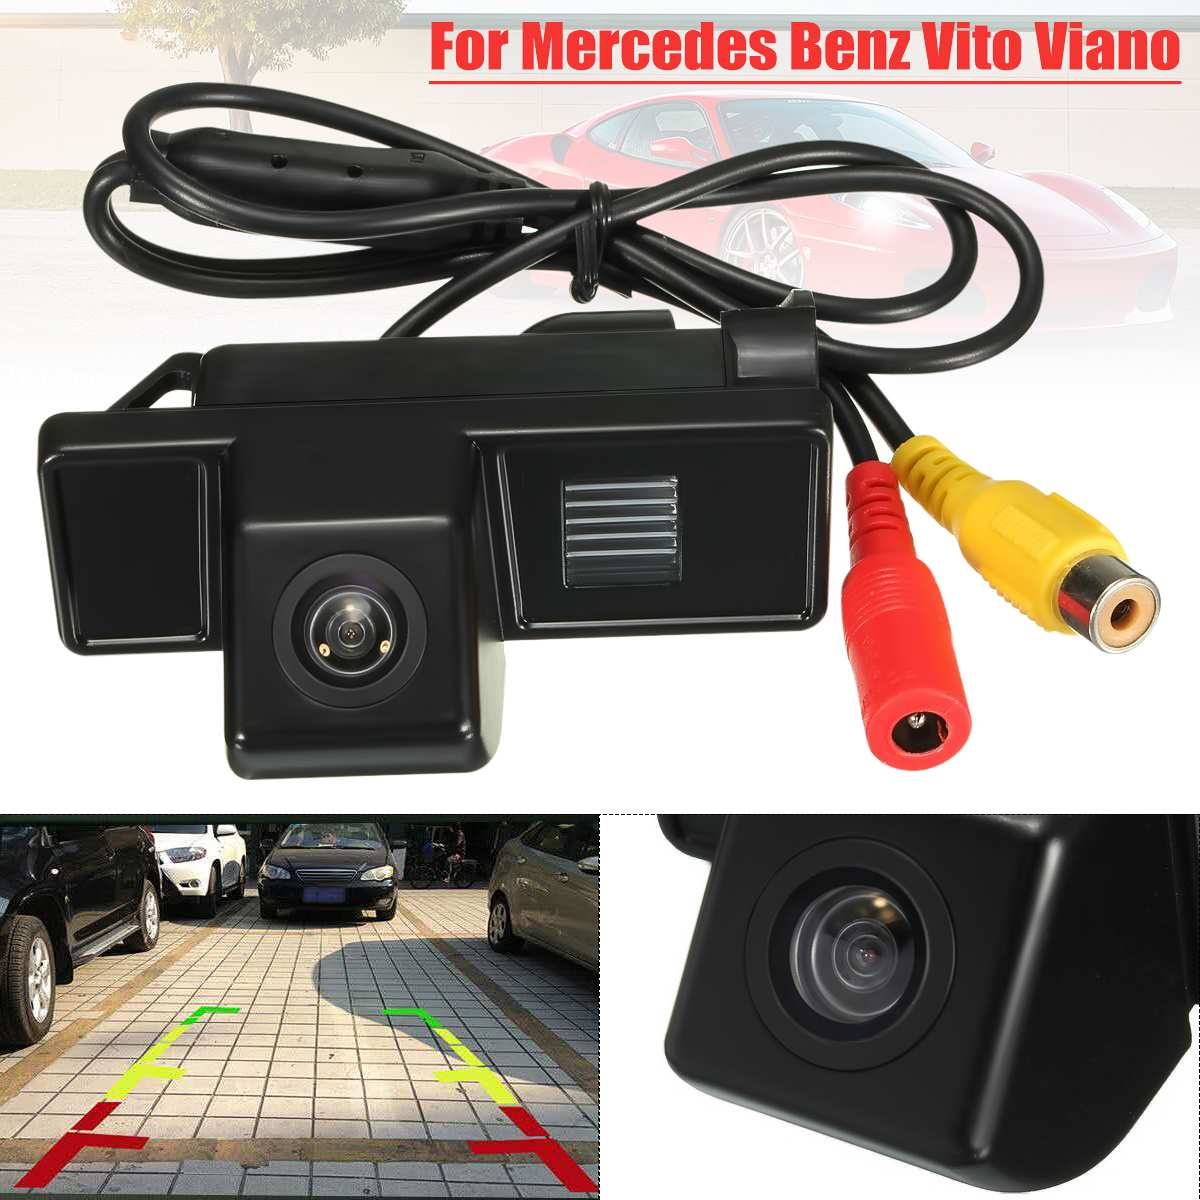 170 Degree CCD Reverse Reversing Camera For Mercedes for Benz Vito Viano 2004 Car Rear View Camera Back up Reversing Camera